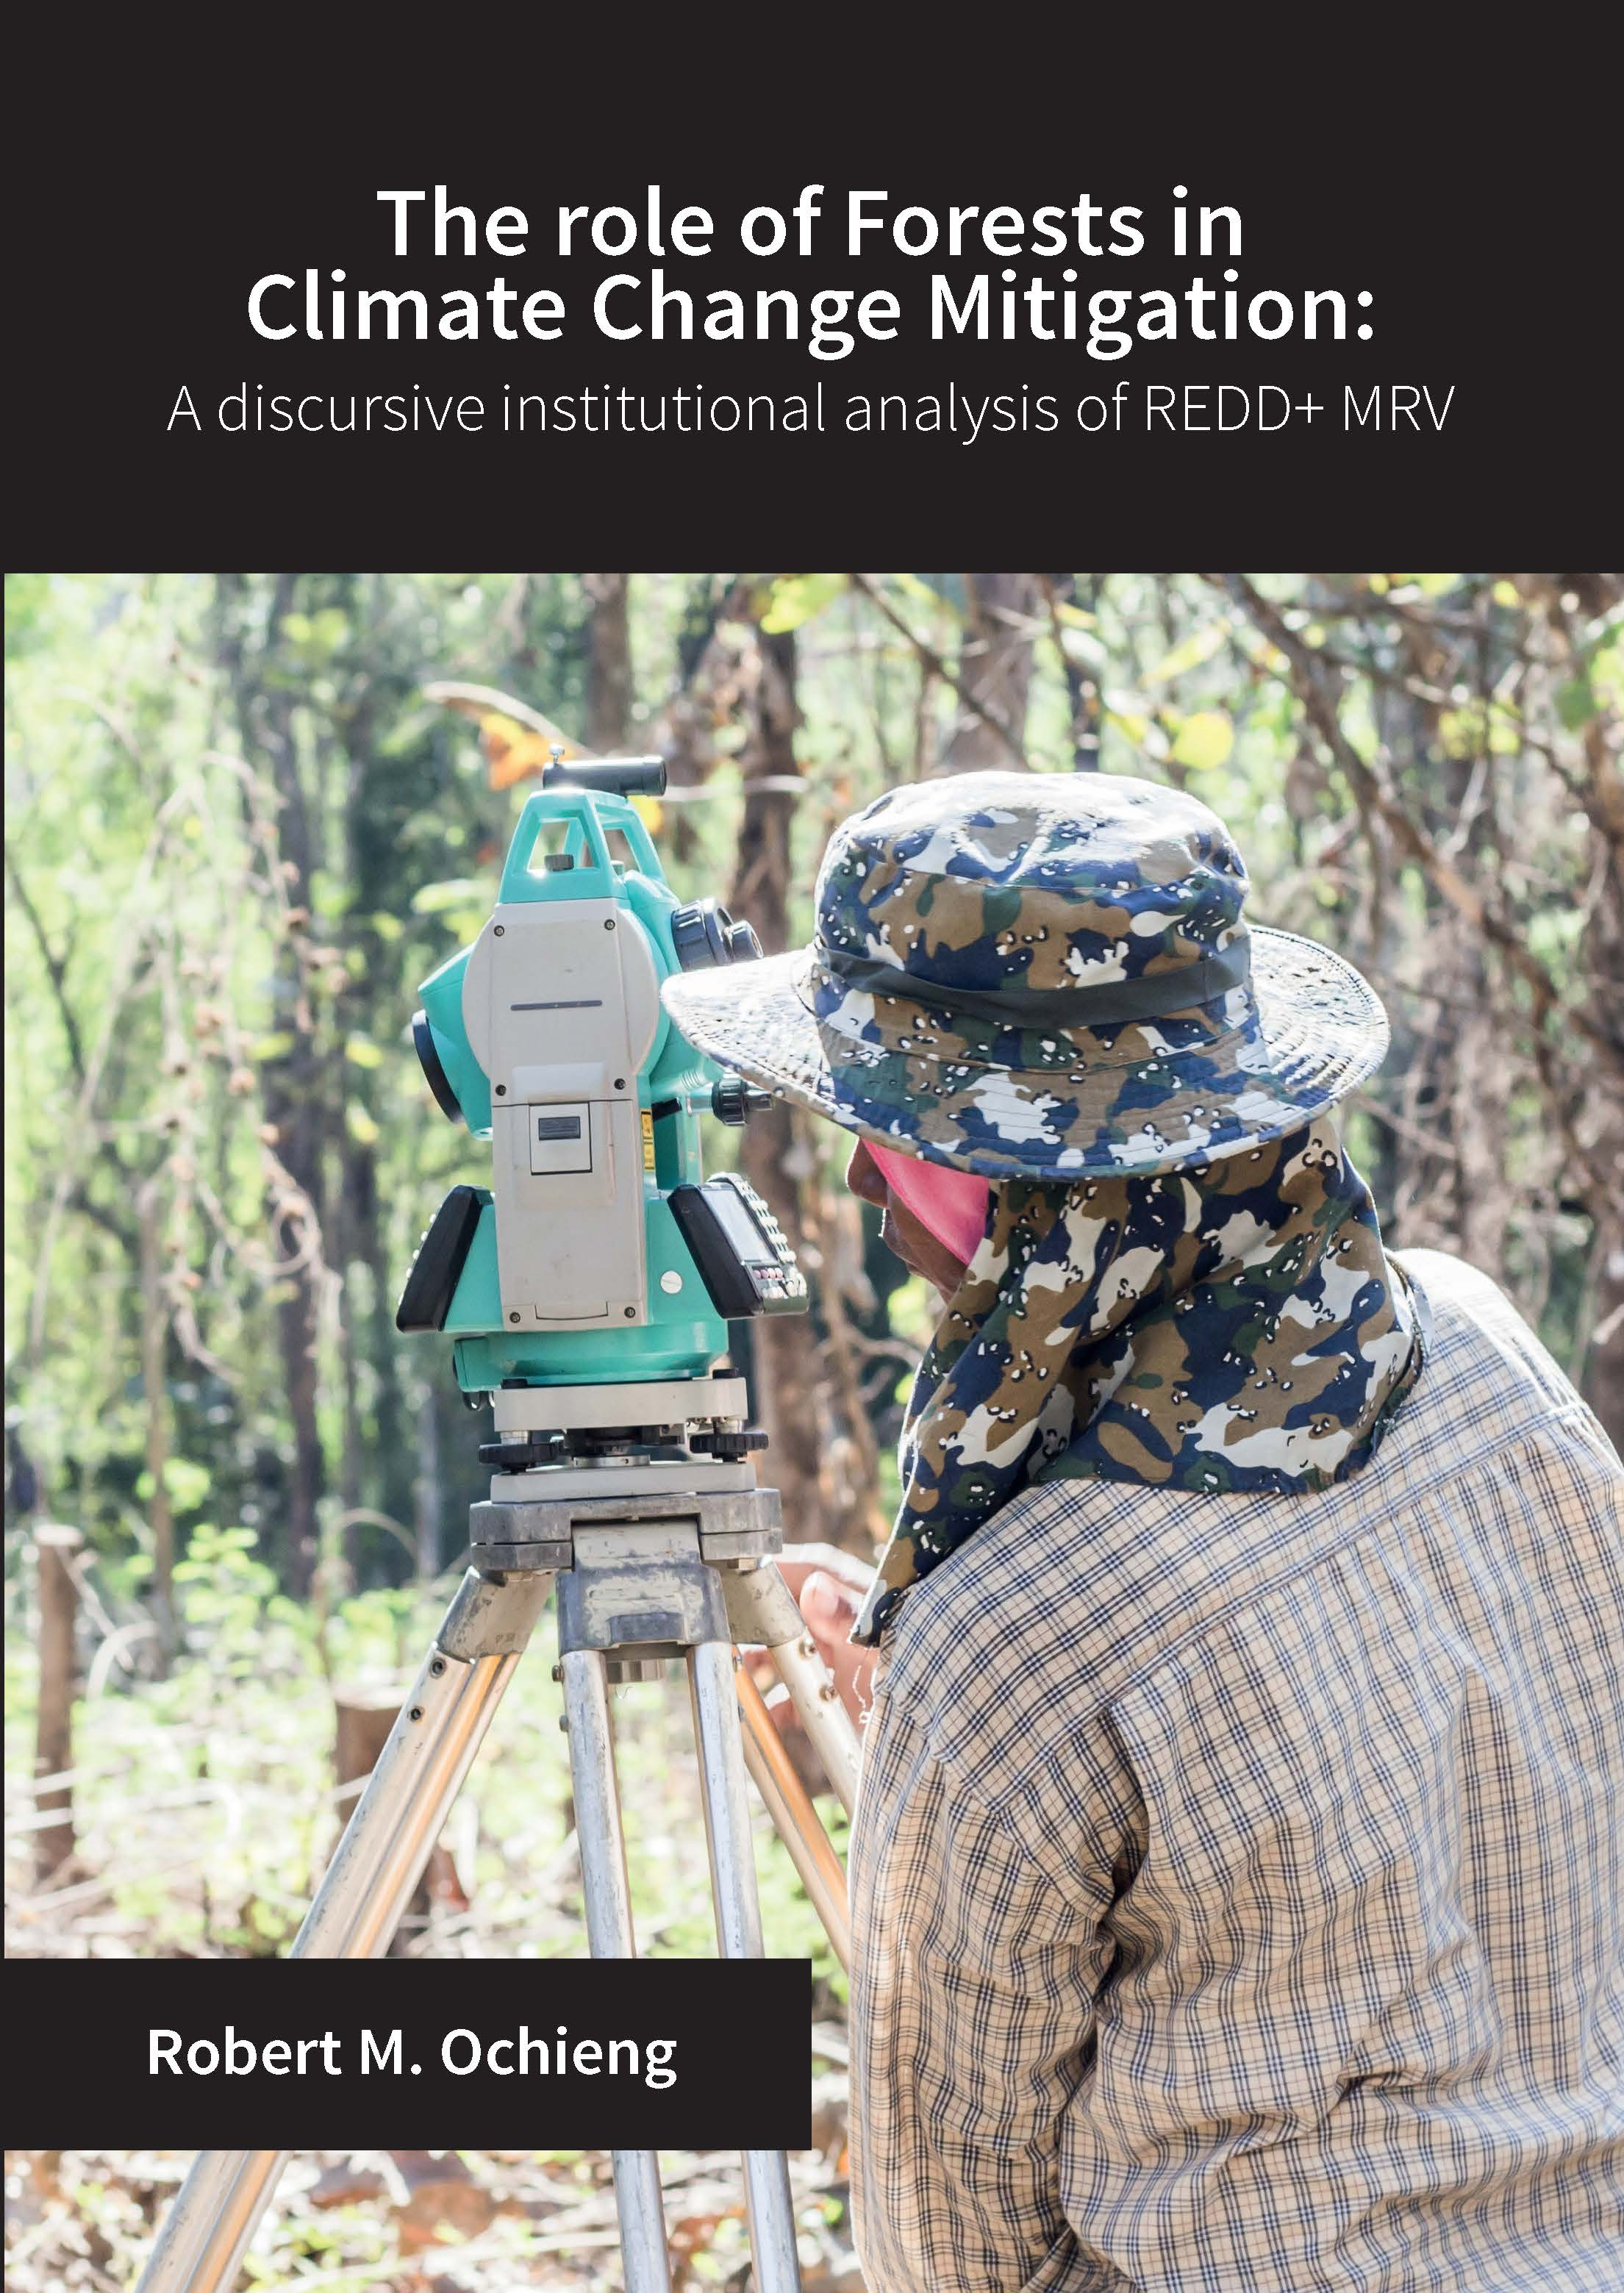 The role of forests in climate change mitigation: A discursiveinstitutional analysis of REDD+ MRV